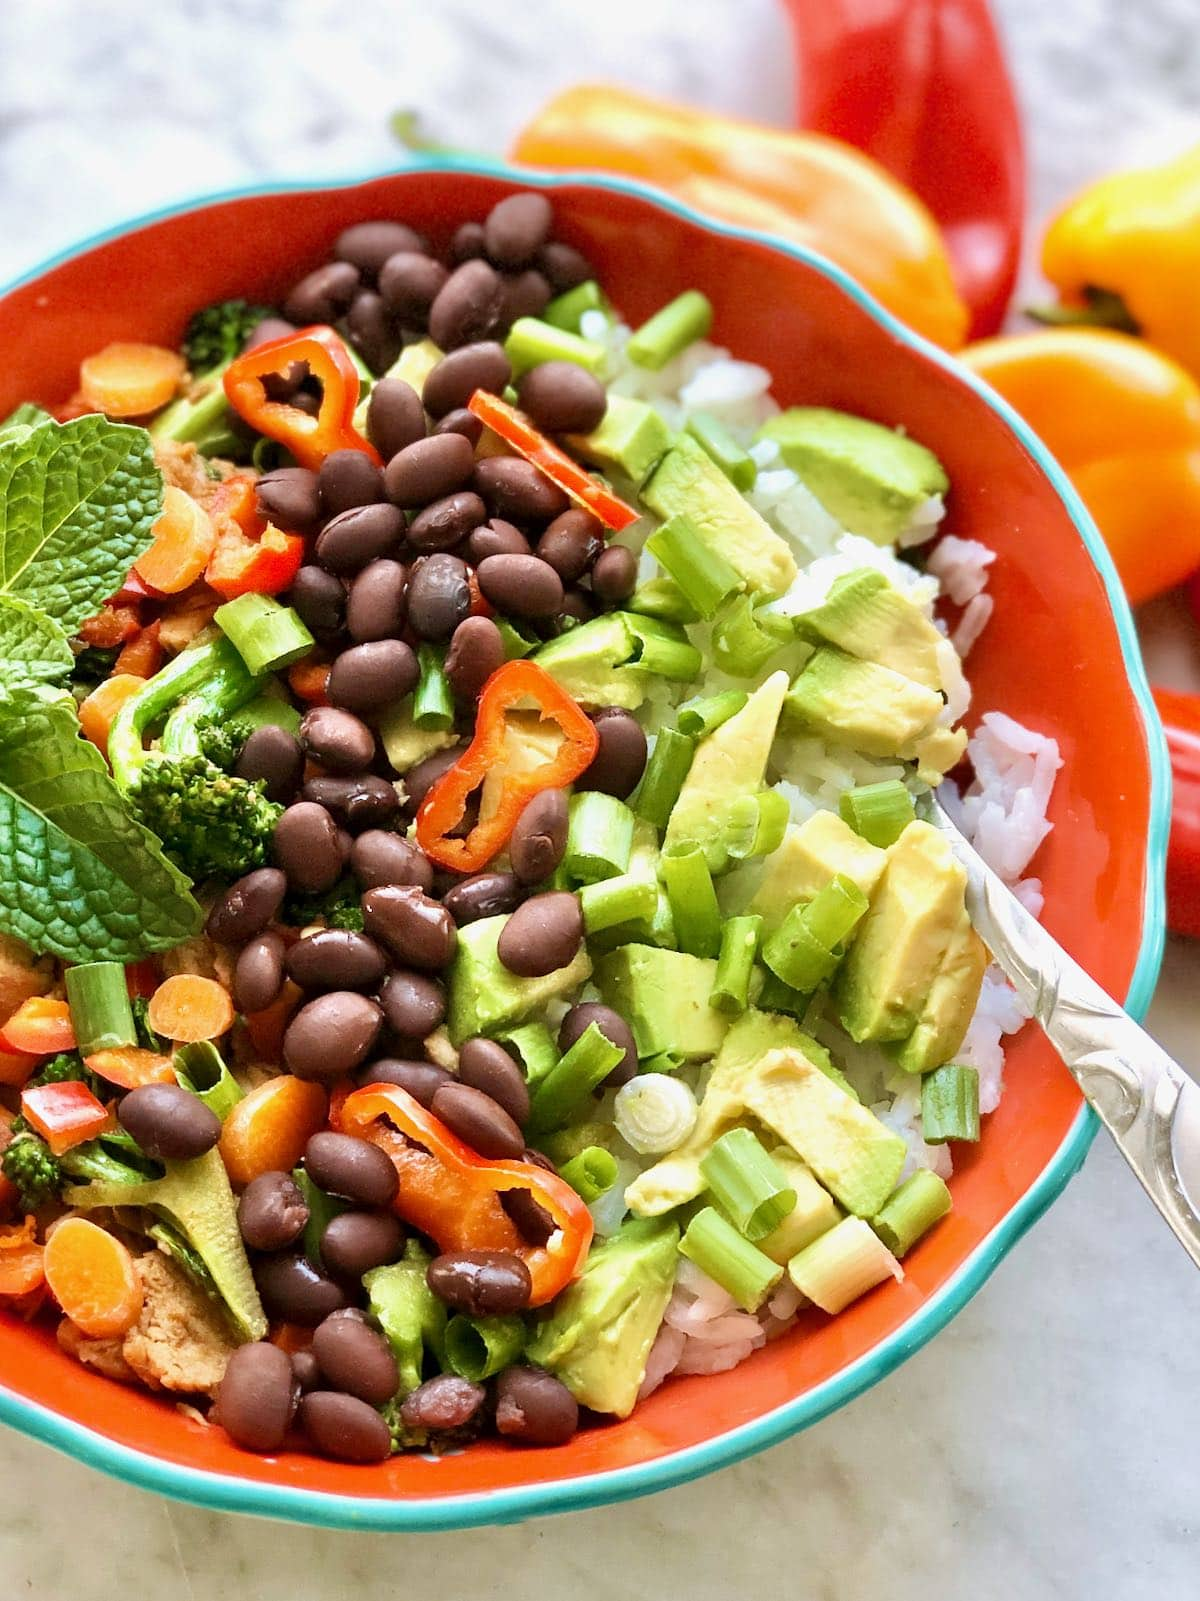 rice bowl topped with avocado, black beans and peppers.